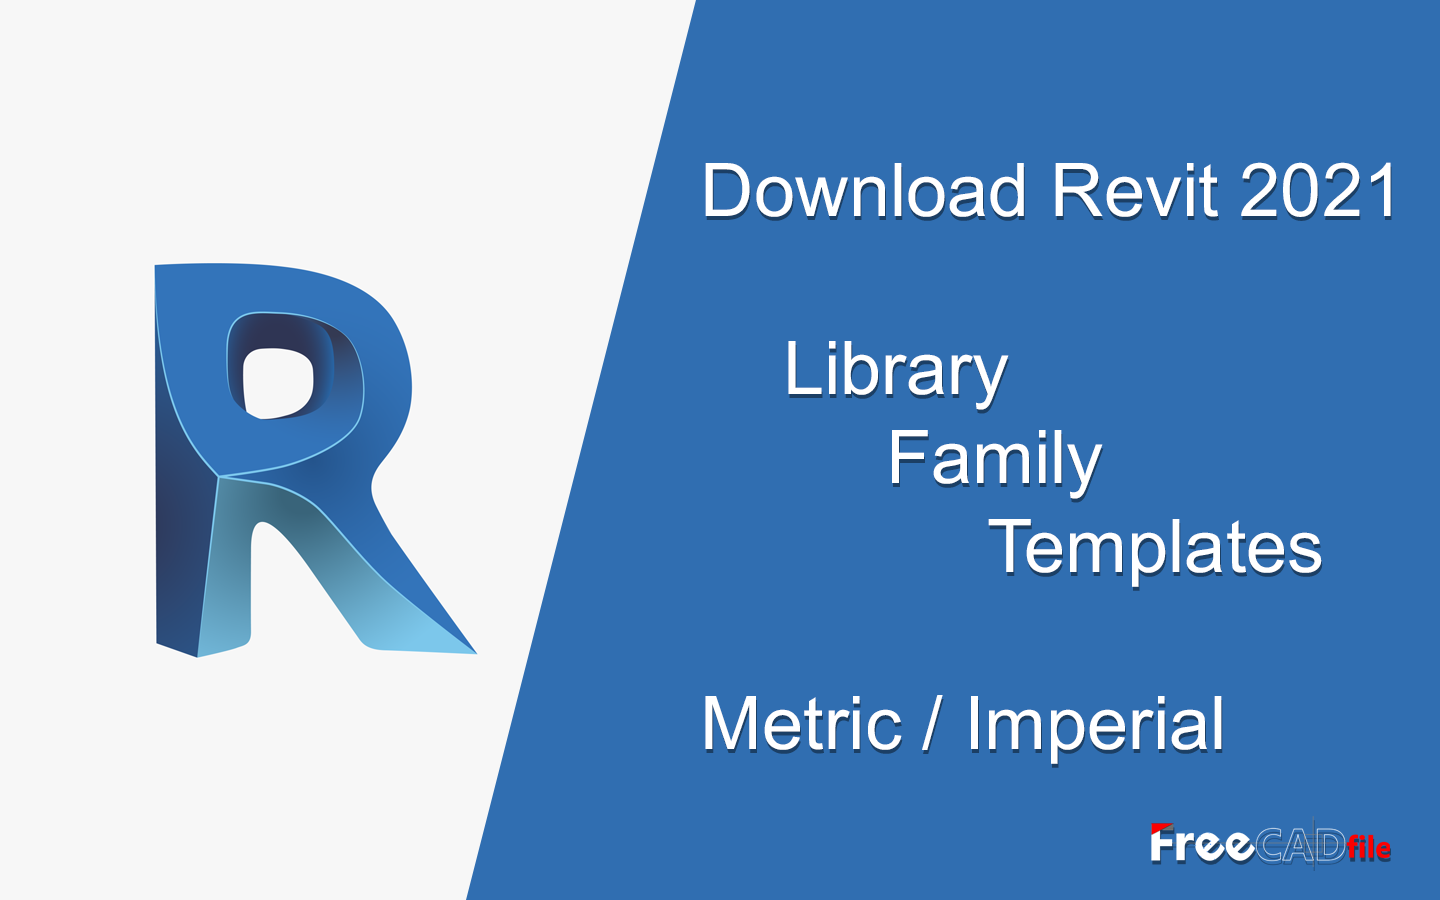 Download Revit 2021, Library,  Family, Templates,  [Metric Imperial]